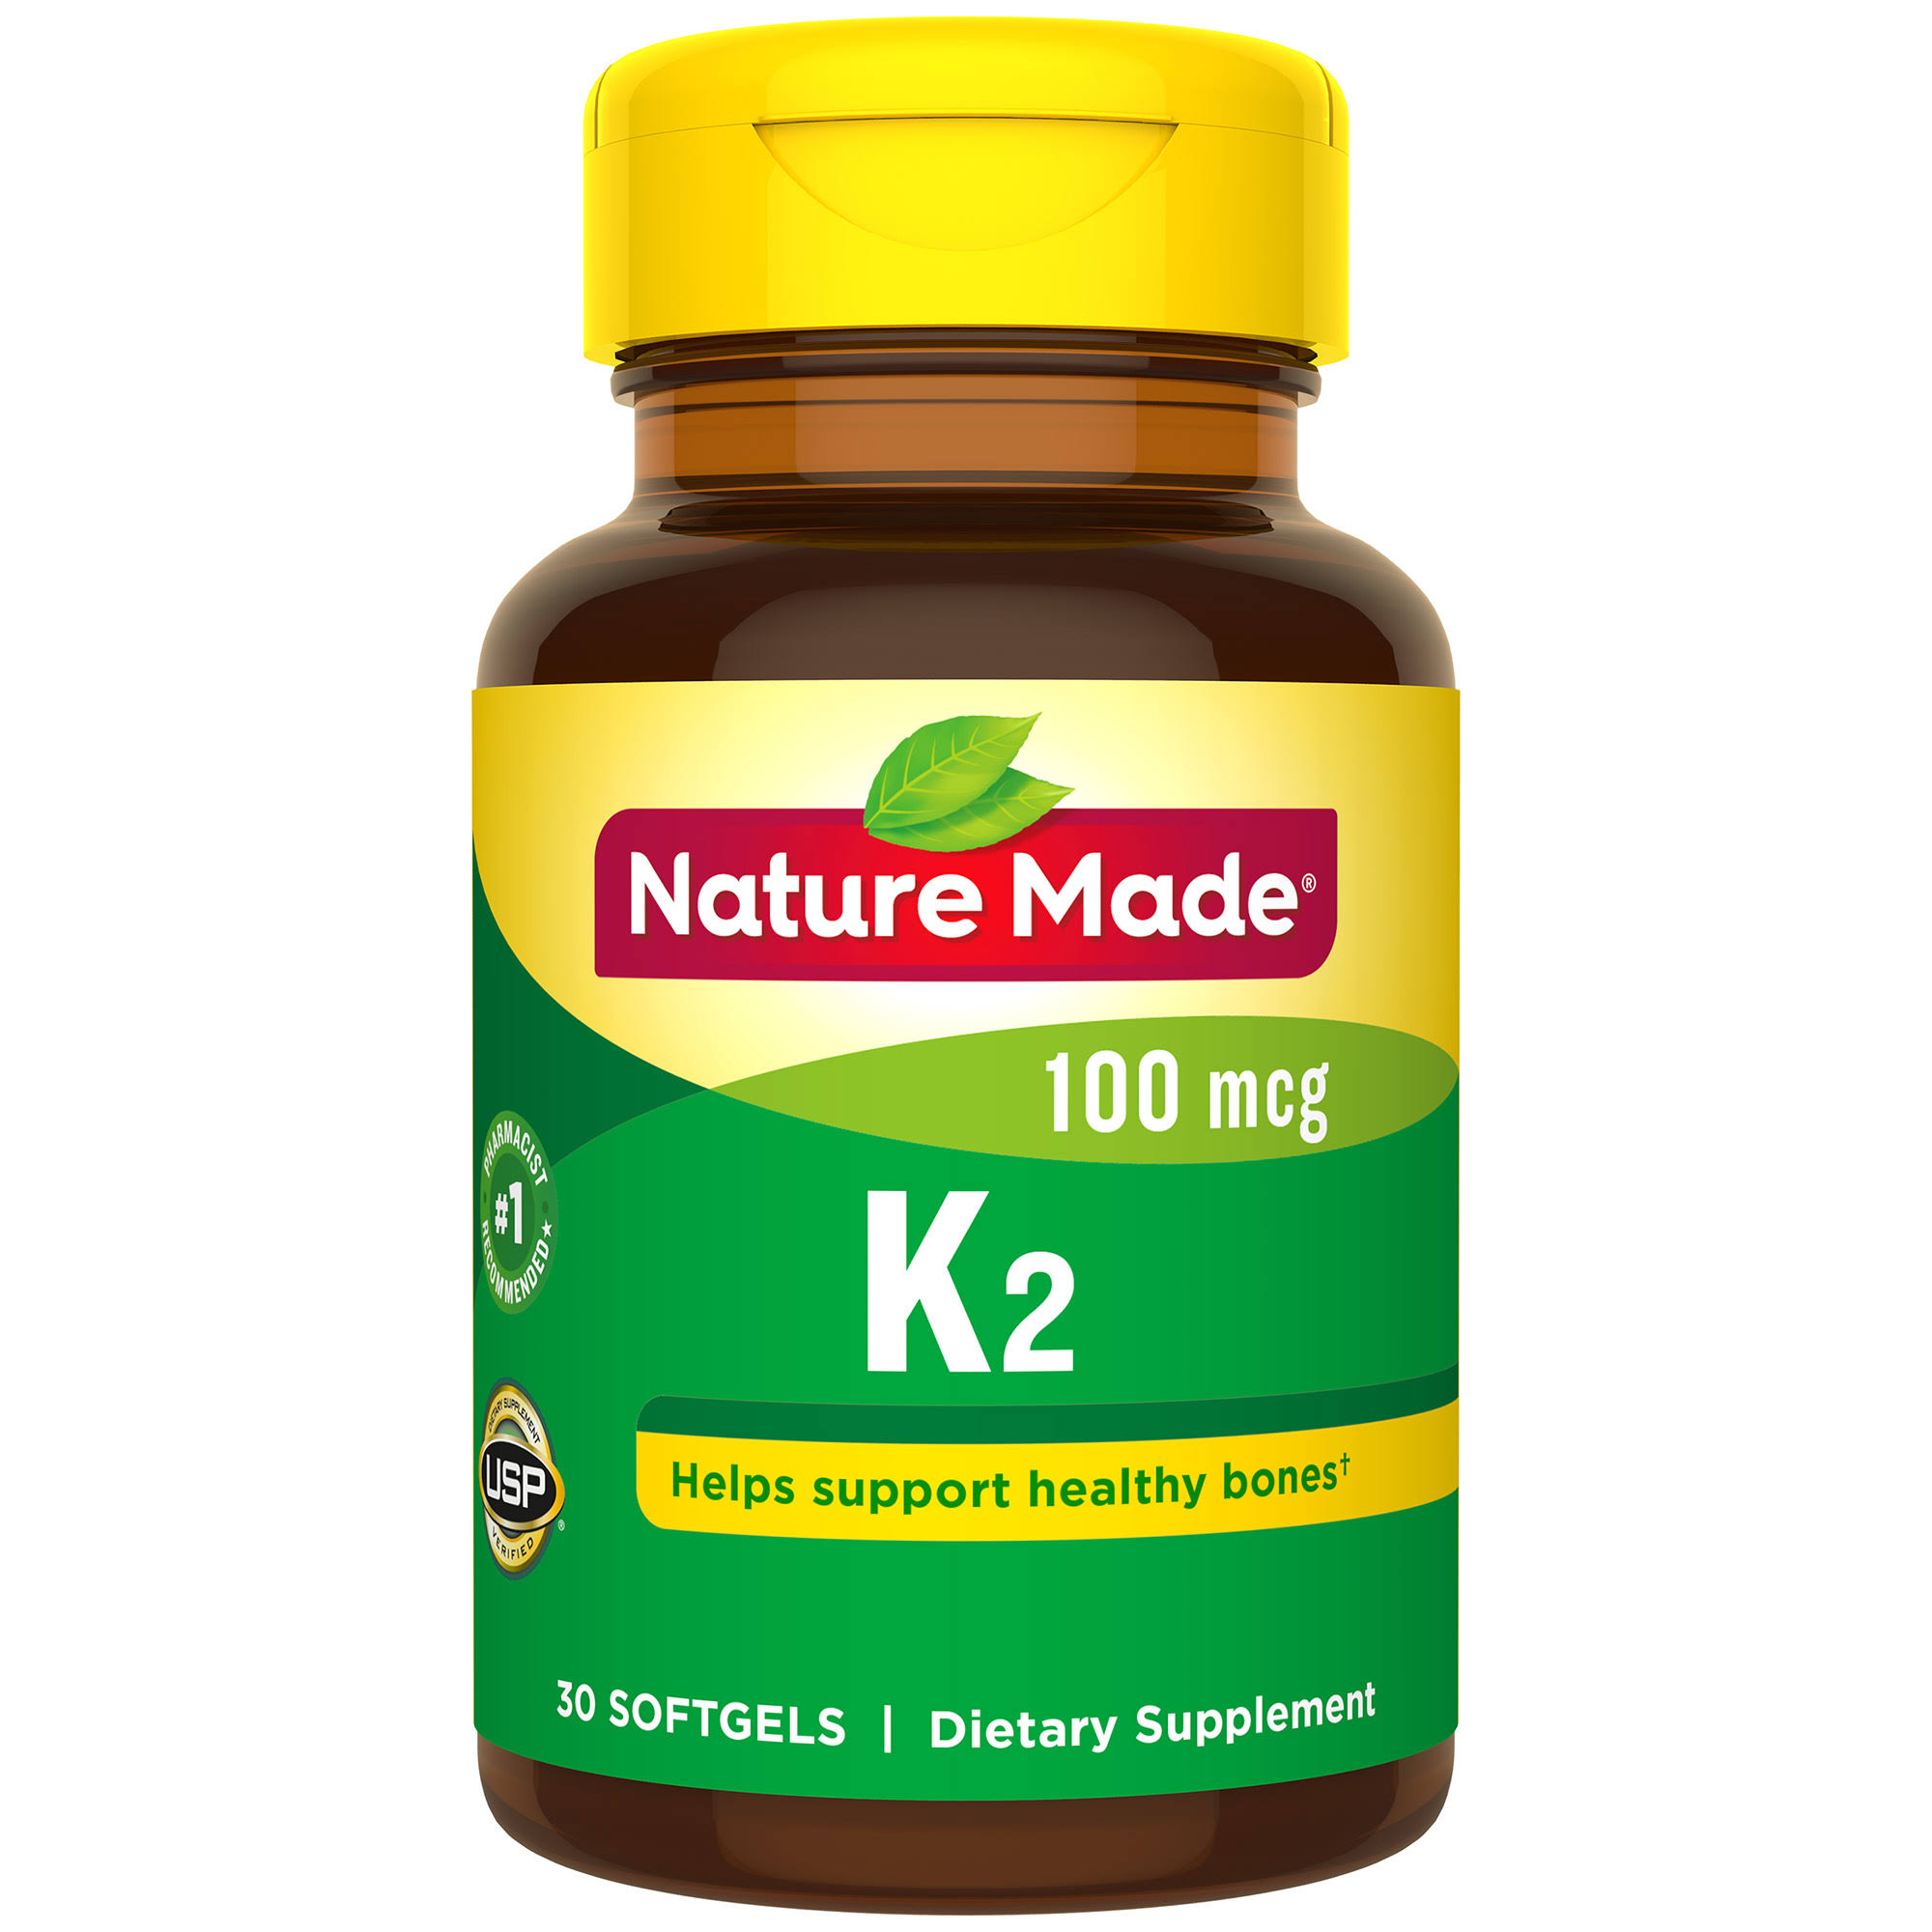 Nature Made Vitamin K2 Dietary Supplement - 30ct